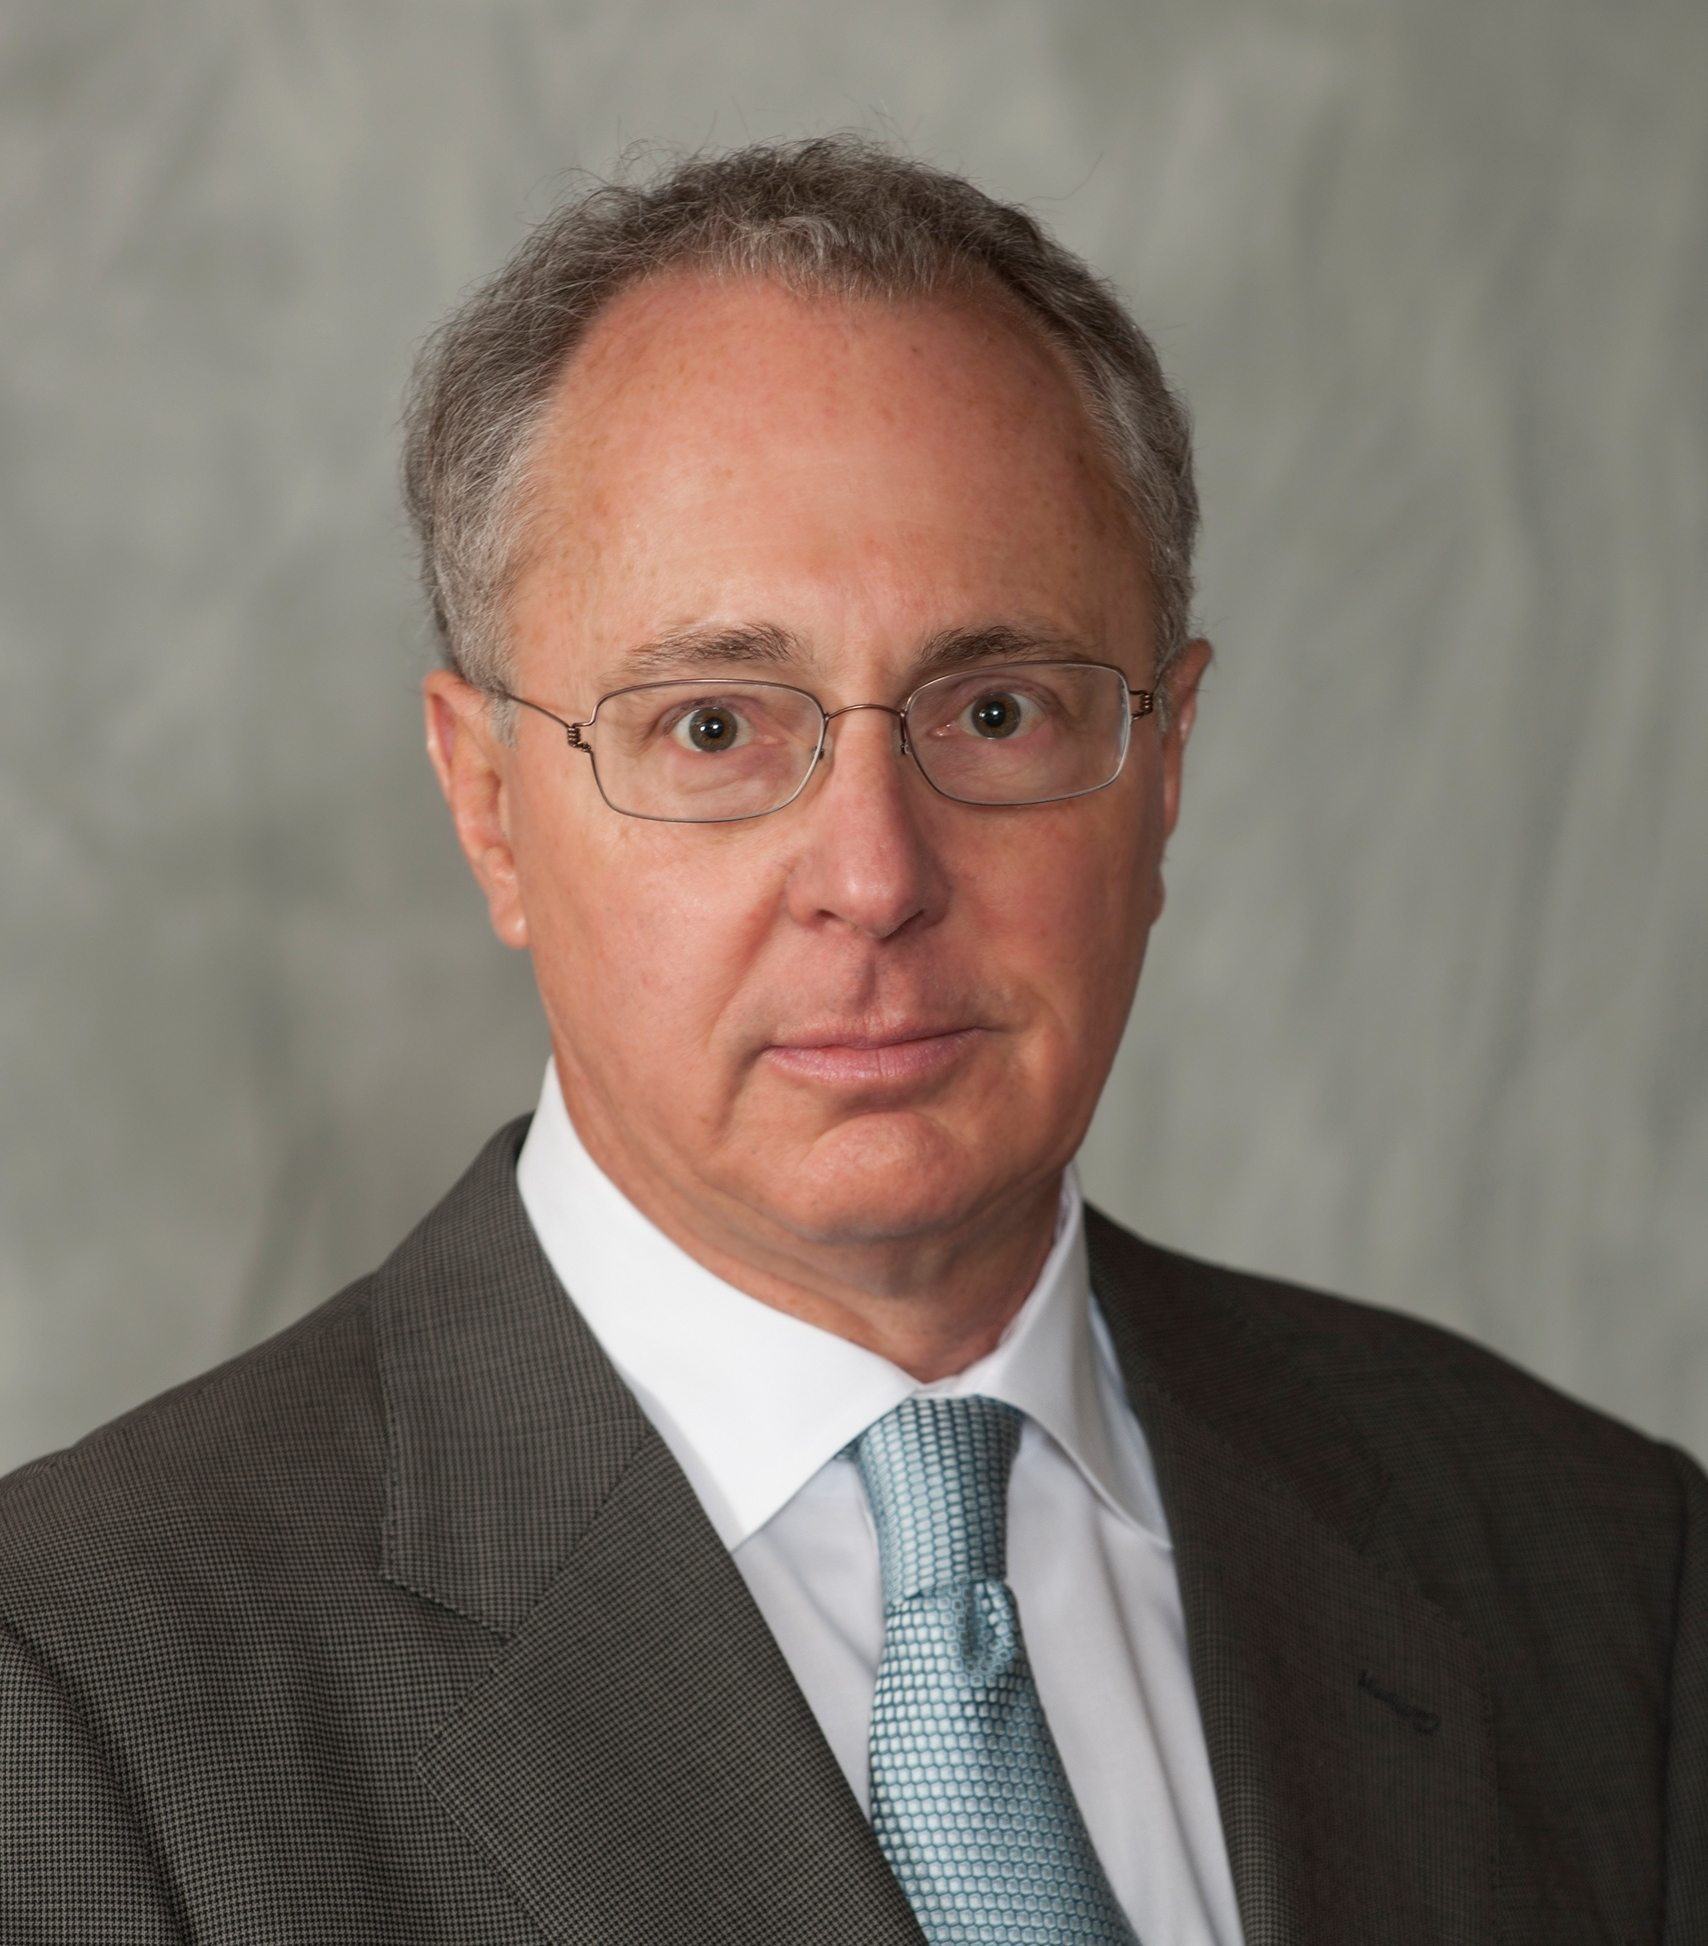 Roger Perlmutter, President, Merck Research Laboratories